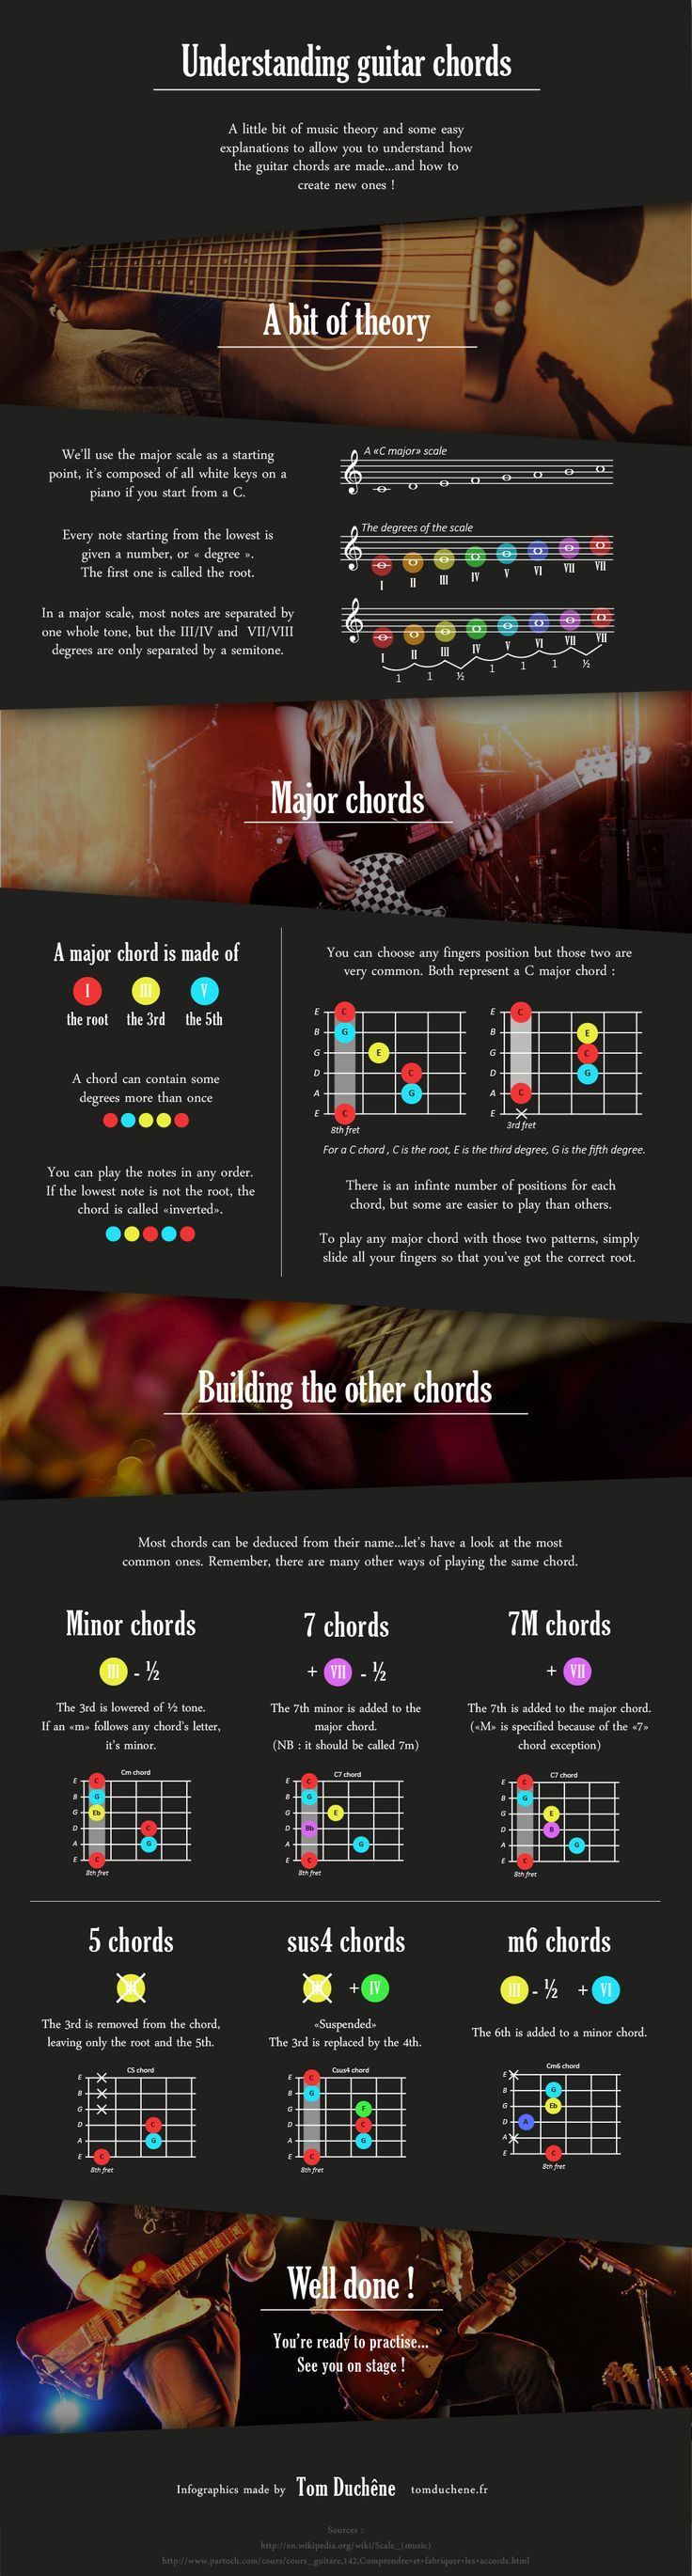 Best 25 music theory ideas on pinterest music theory guitar understanding guitar chords infogaphic guitar music hexwebz Images